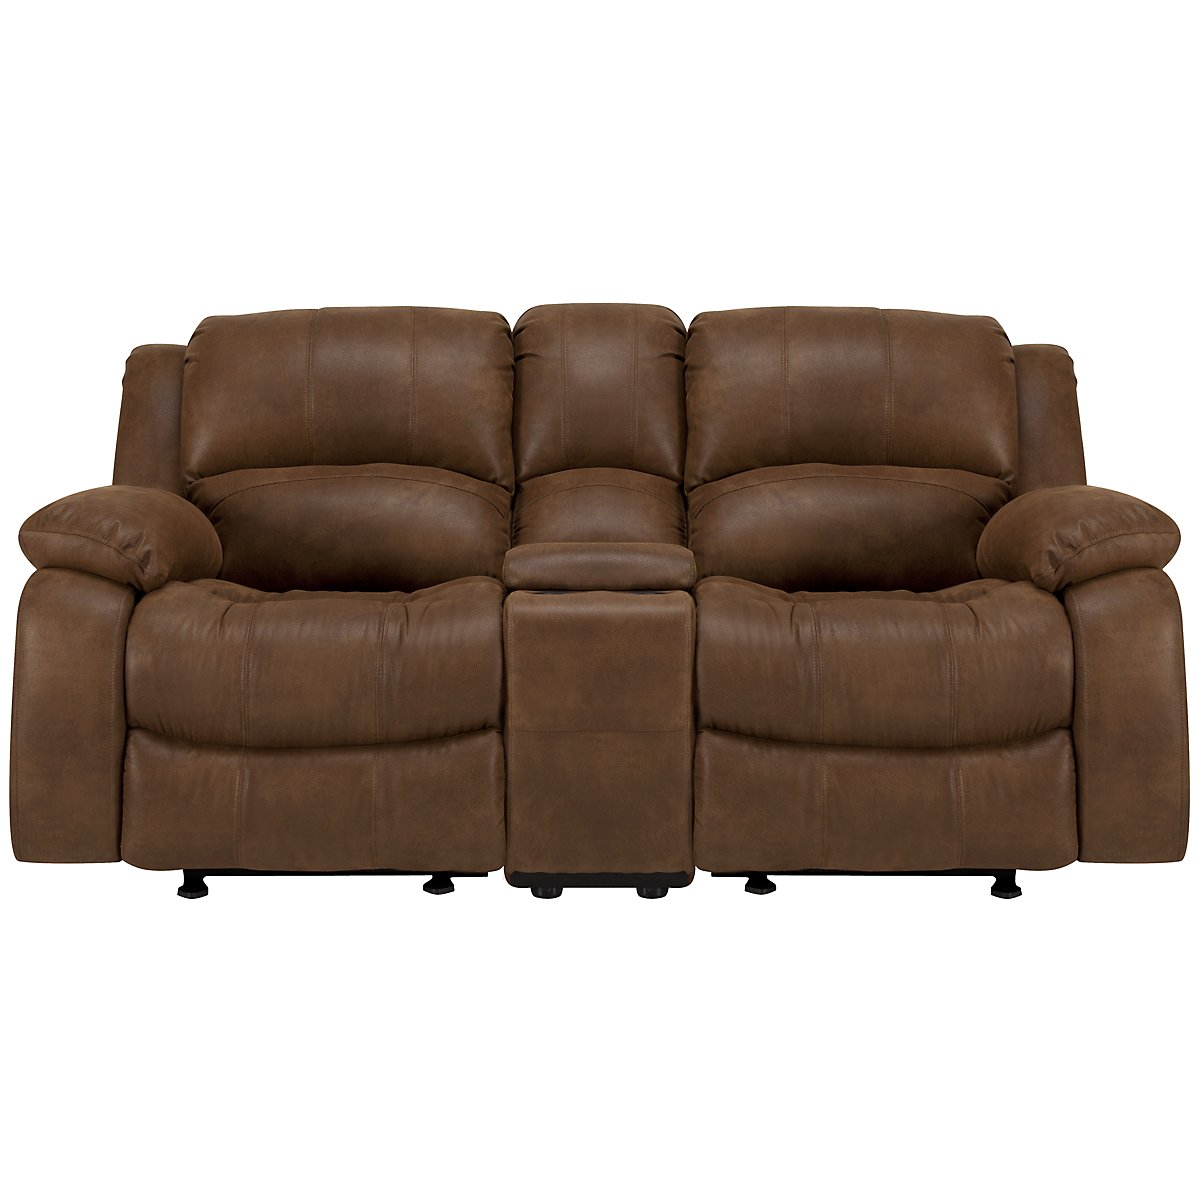 Tyler2 Md Brown Microfiber Power Reclining Console Loveseat